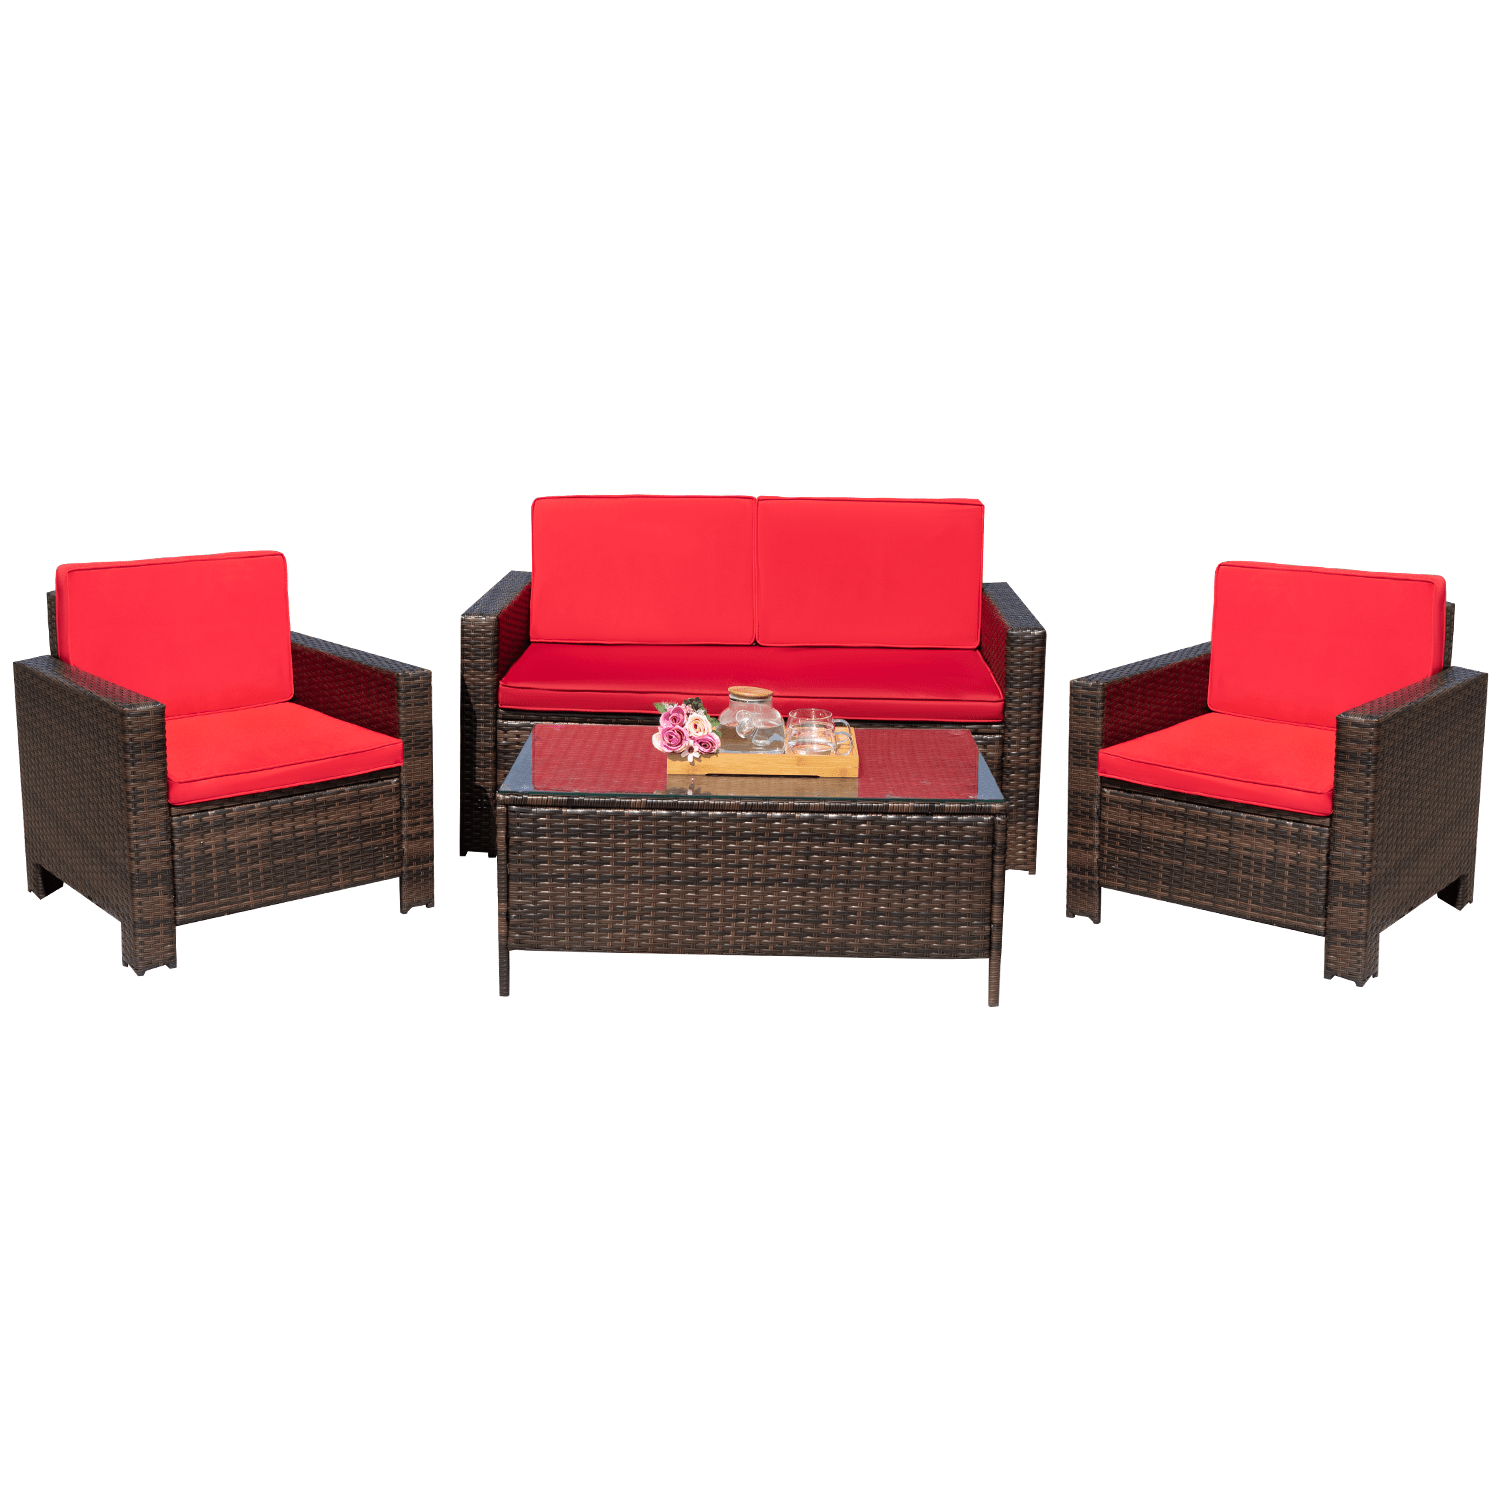 walnew 4 piece wicker outdoor patio conversation set with cushions brown red